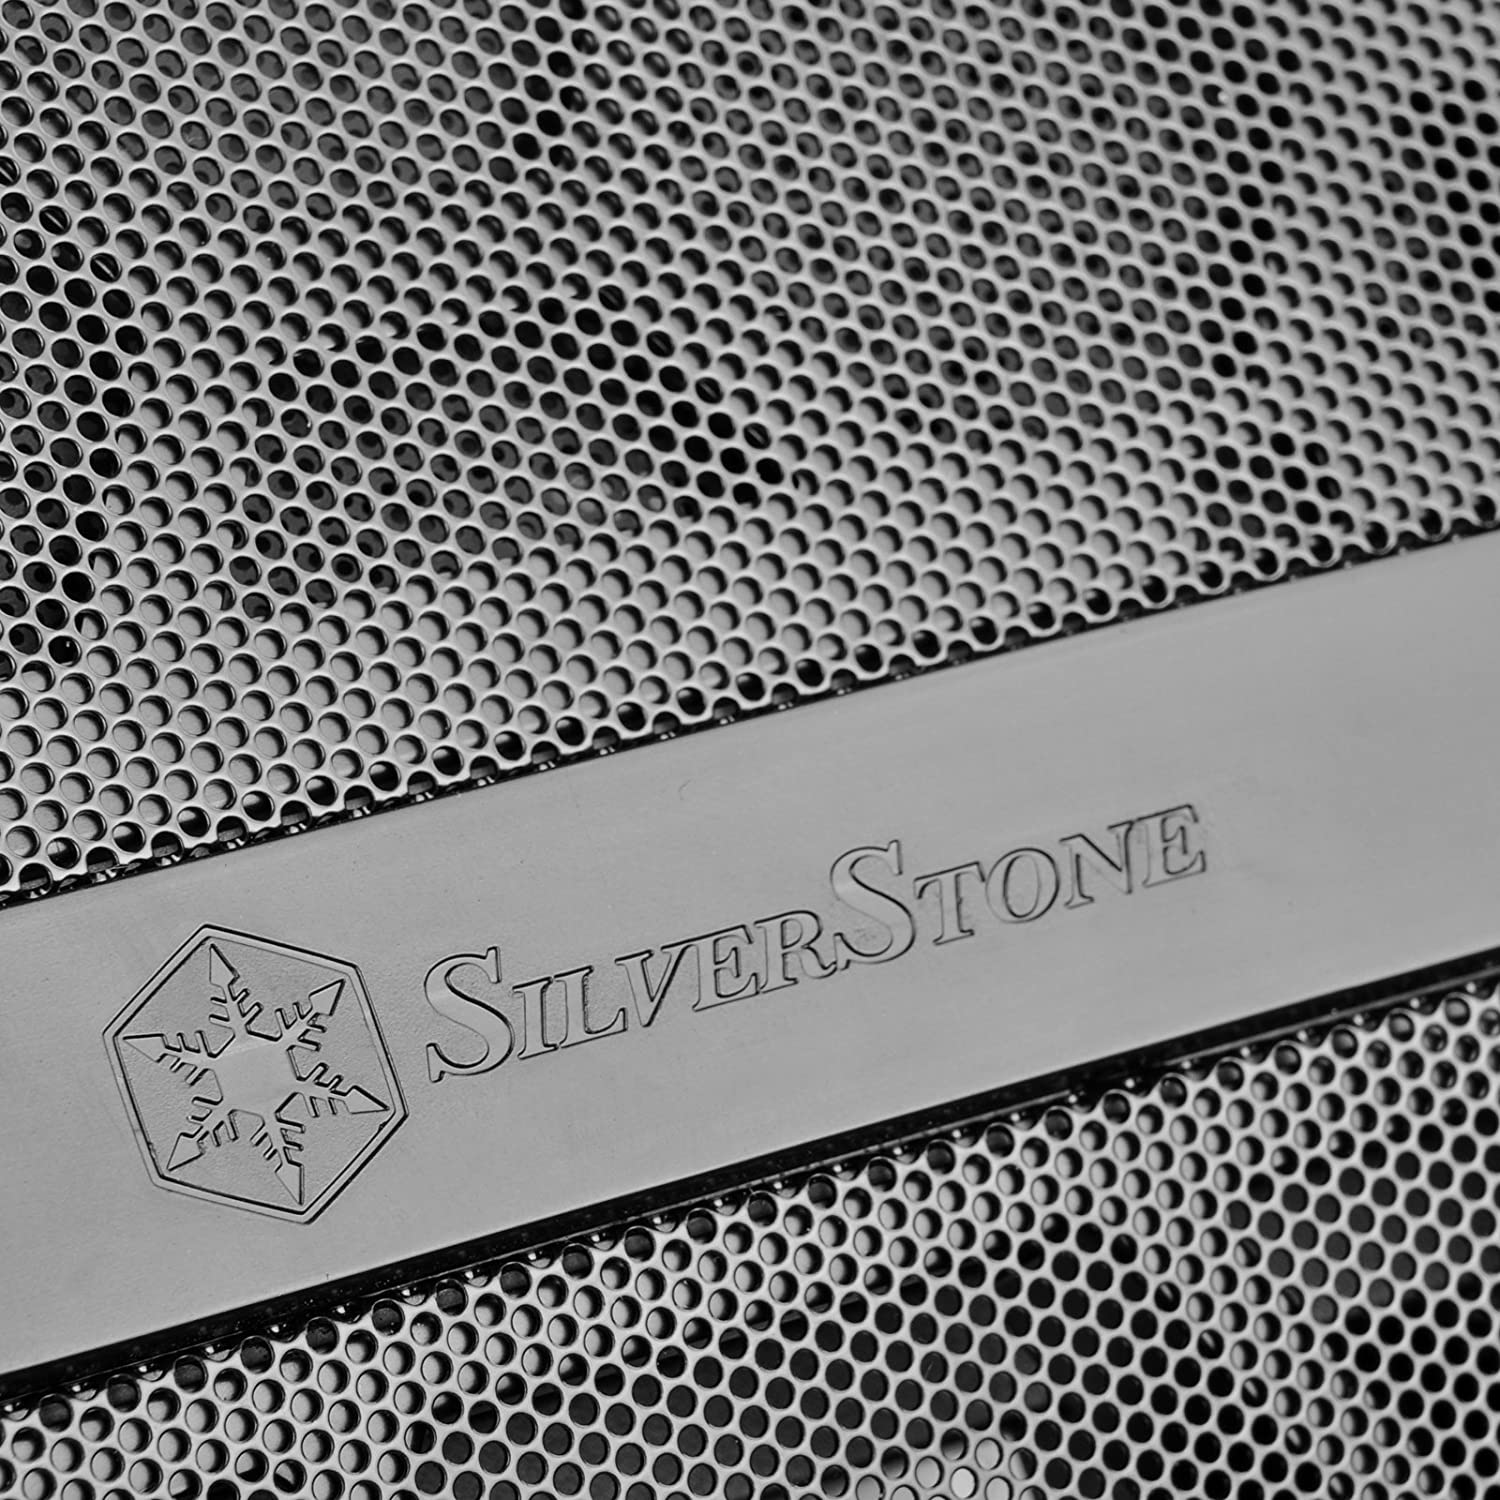 Full Tempered Glass white Silent High Airflow Performance SilverStone SST-RL07W-G Red Line Midi Tower ATX Gaming Computer Case